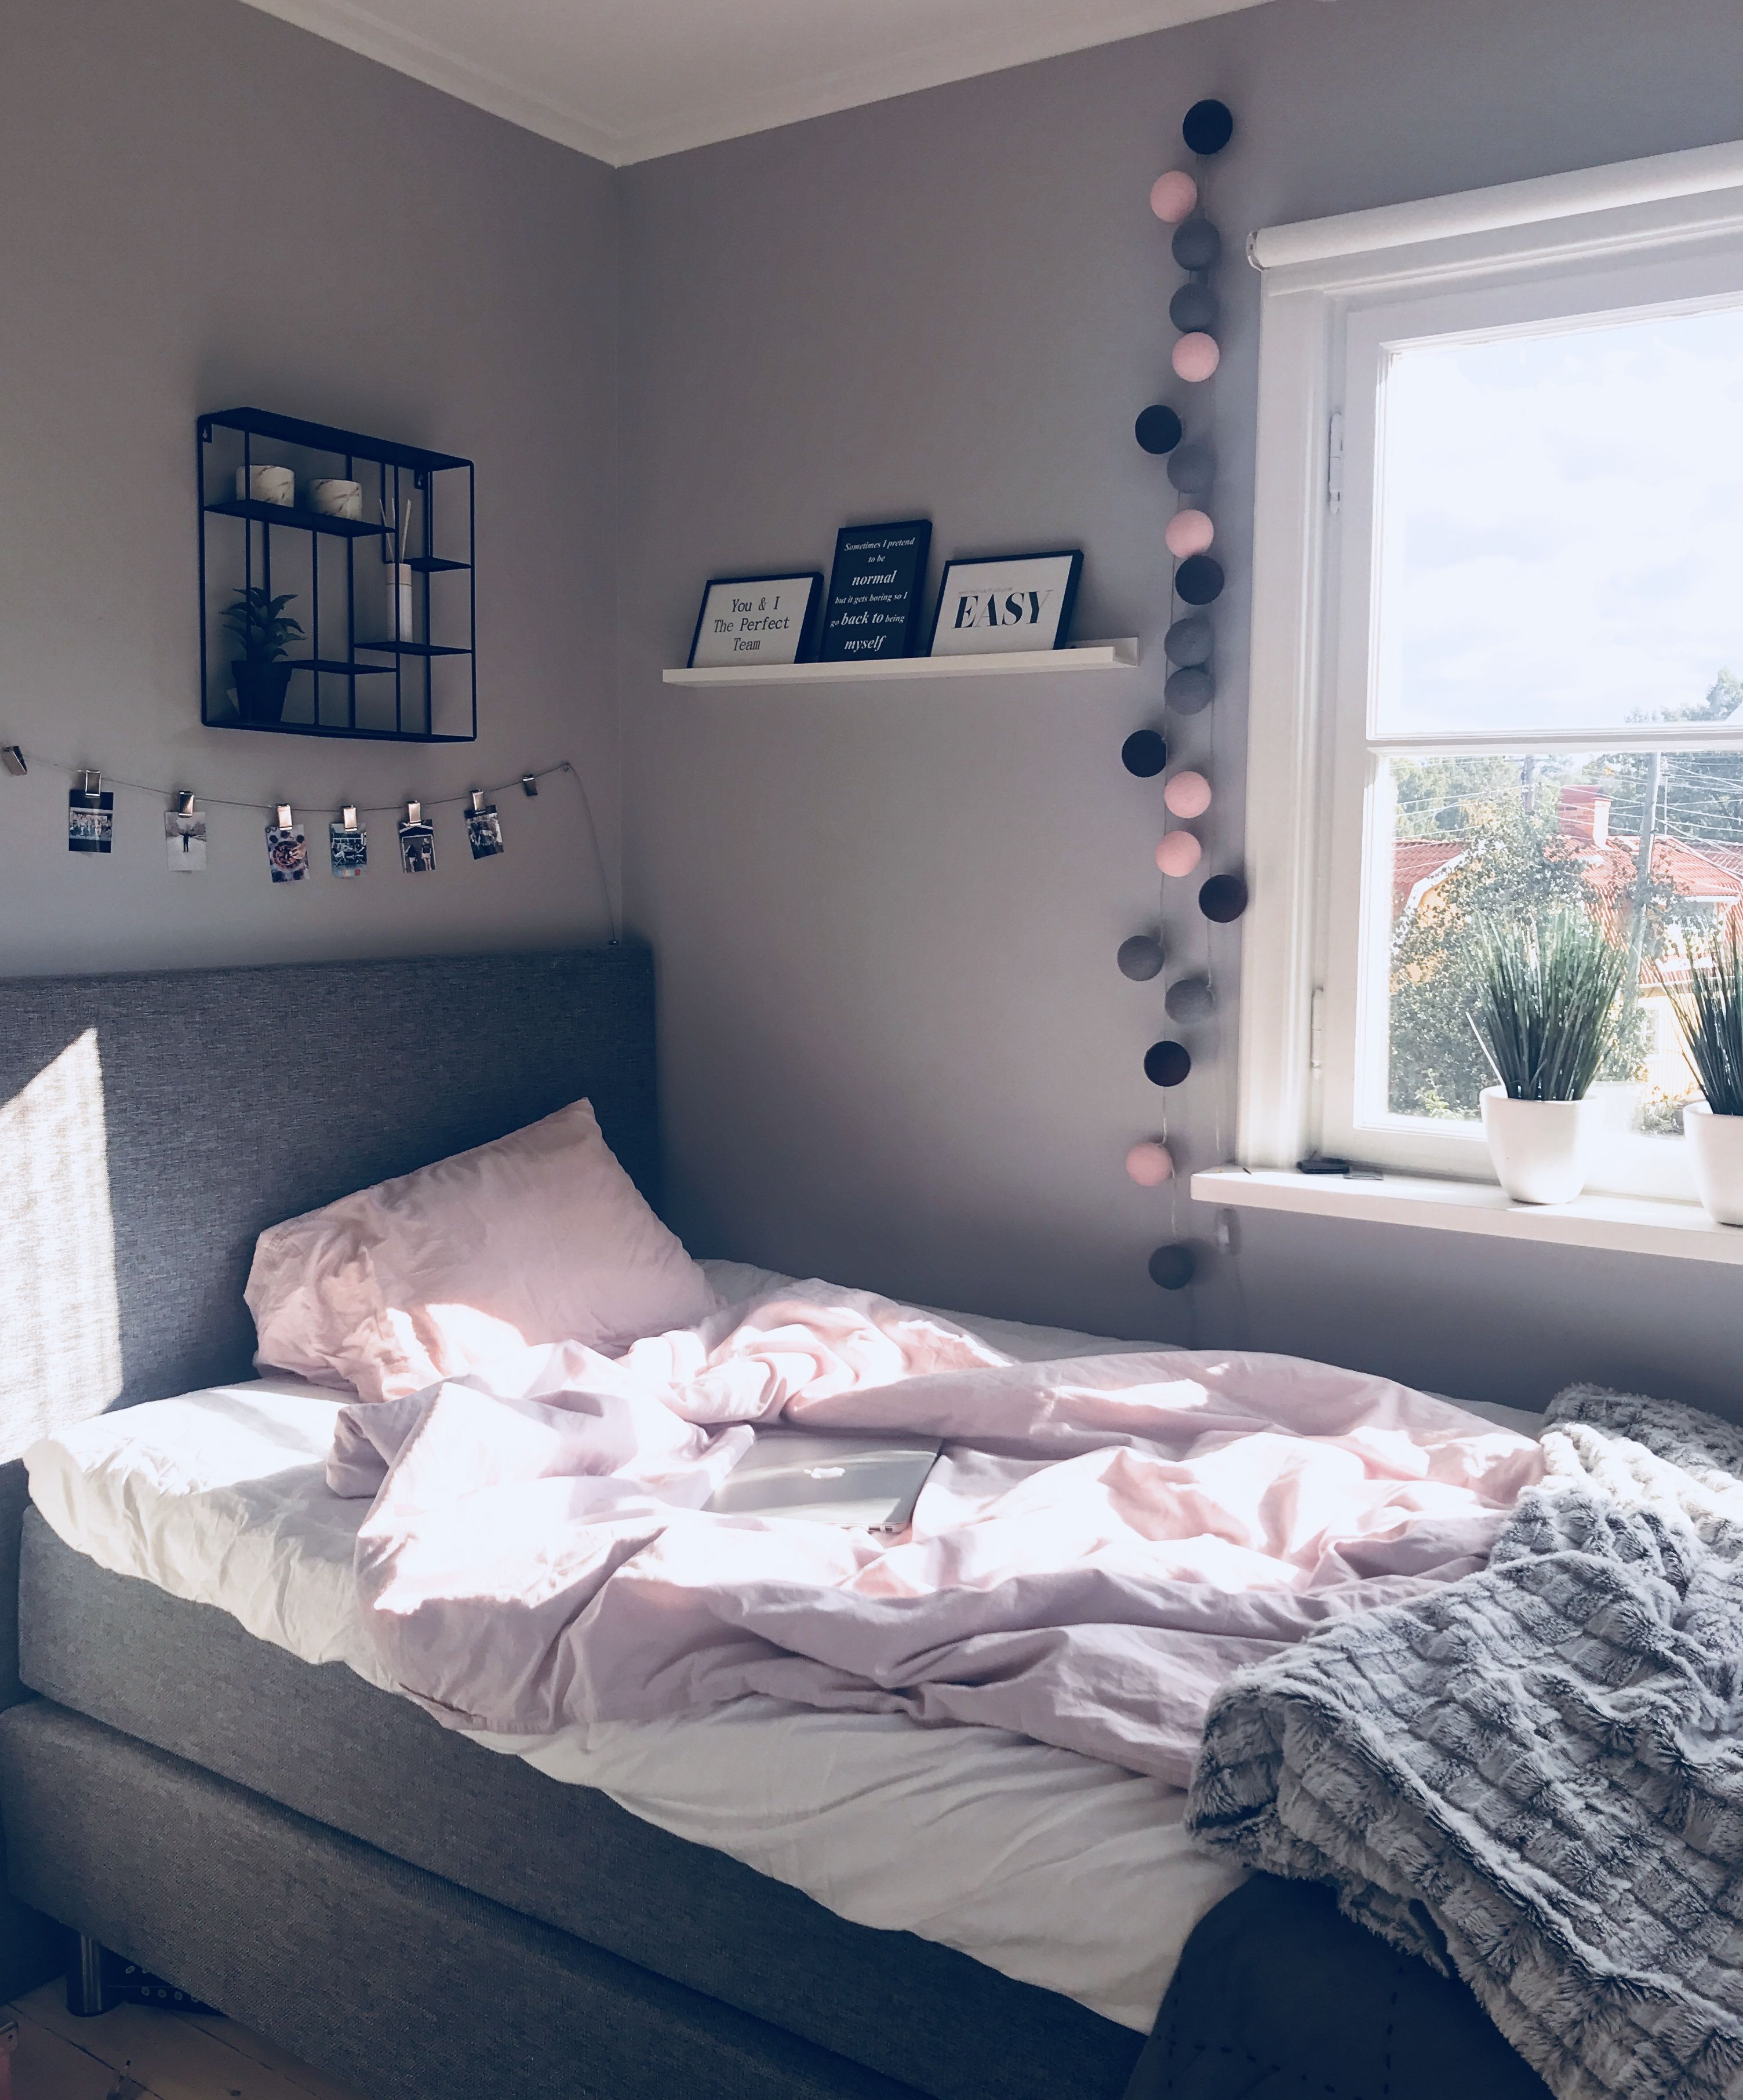 Tumblr Bedroom Color Schemes Bedroom Cupboards B Q Bedroom Colour Ideas For Young Adults Little Boy Bedroom Wall Stickers: Colour Scheme (grey, Black, White, And Not Pink) And Free